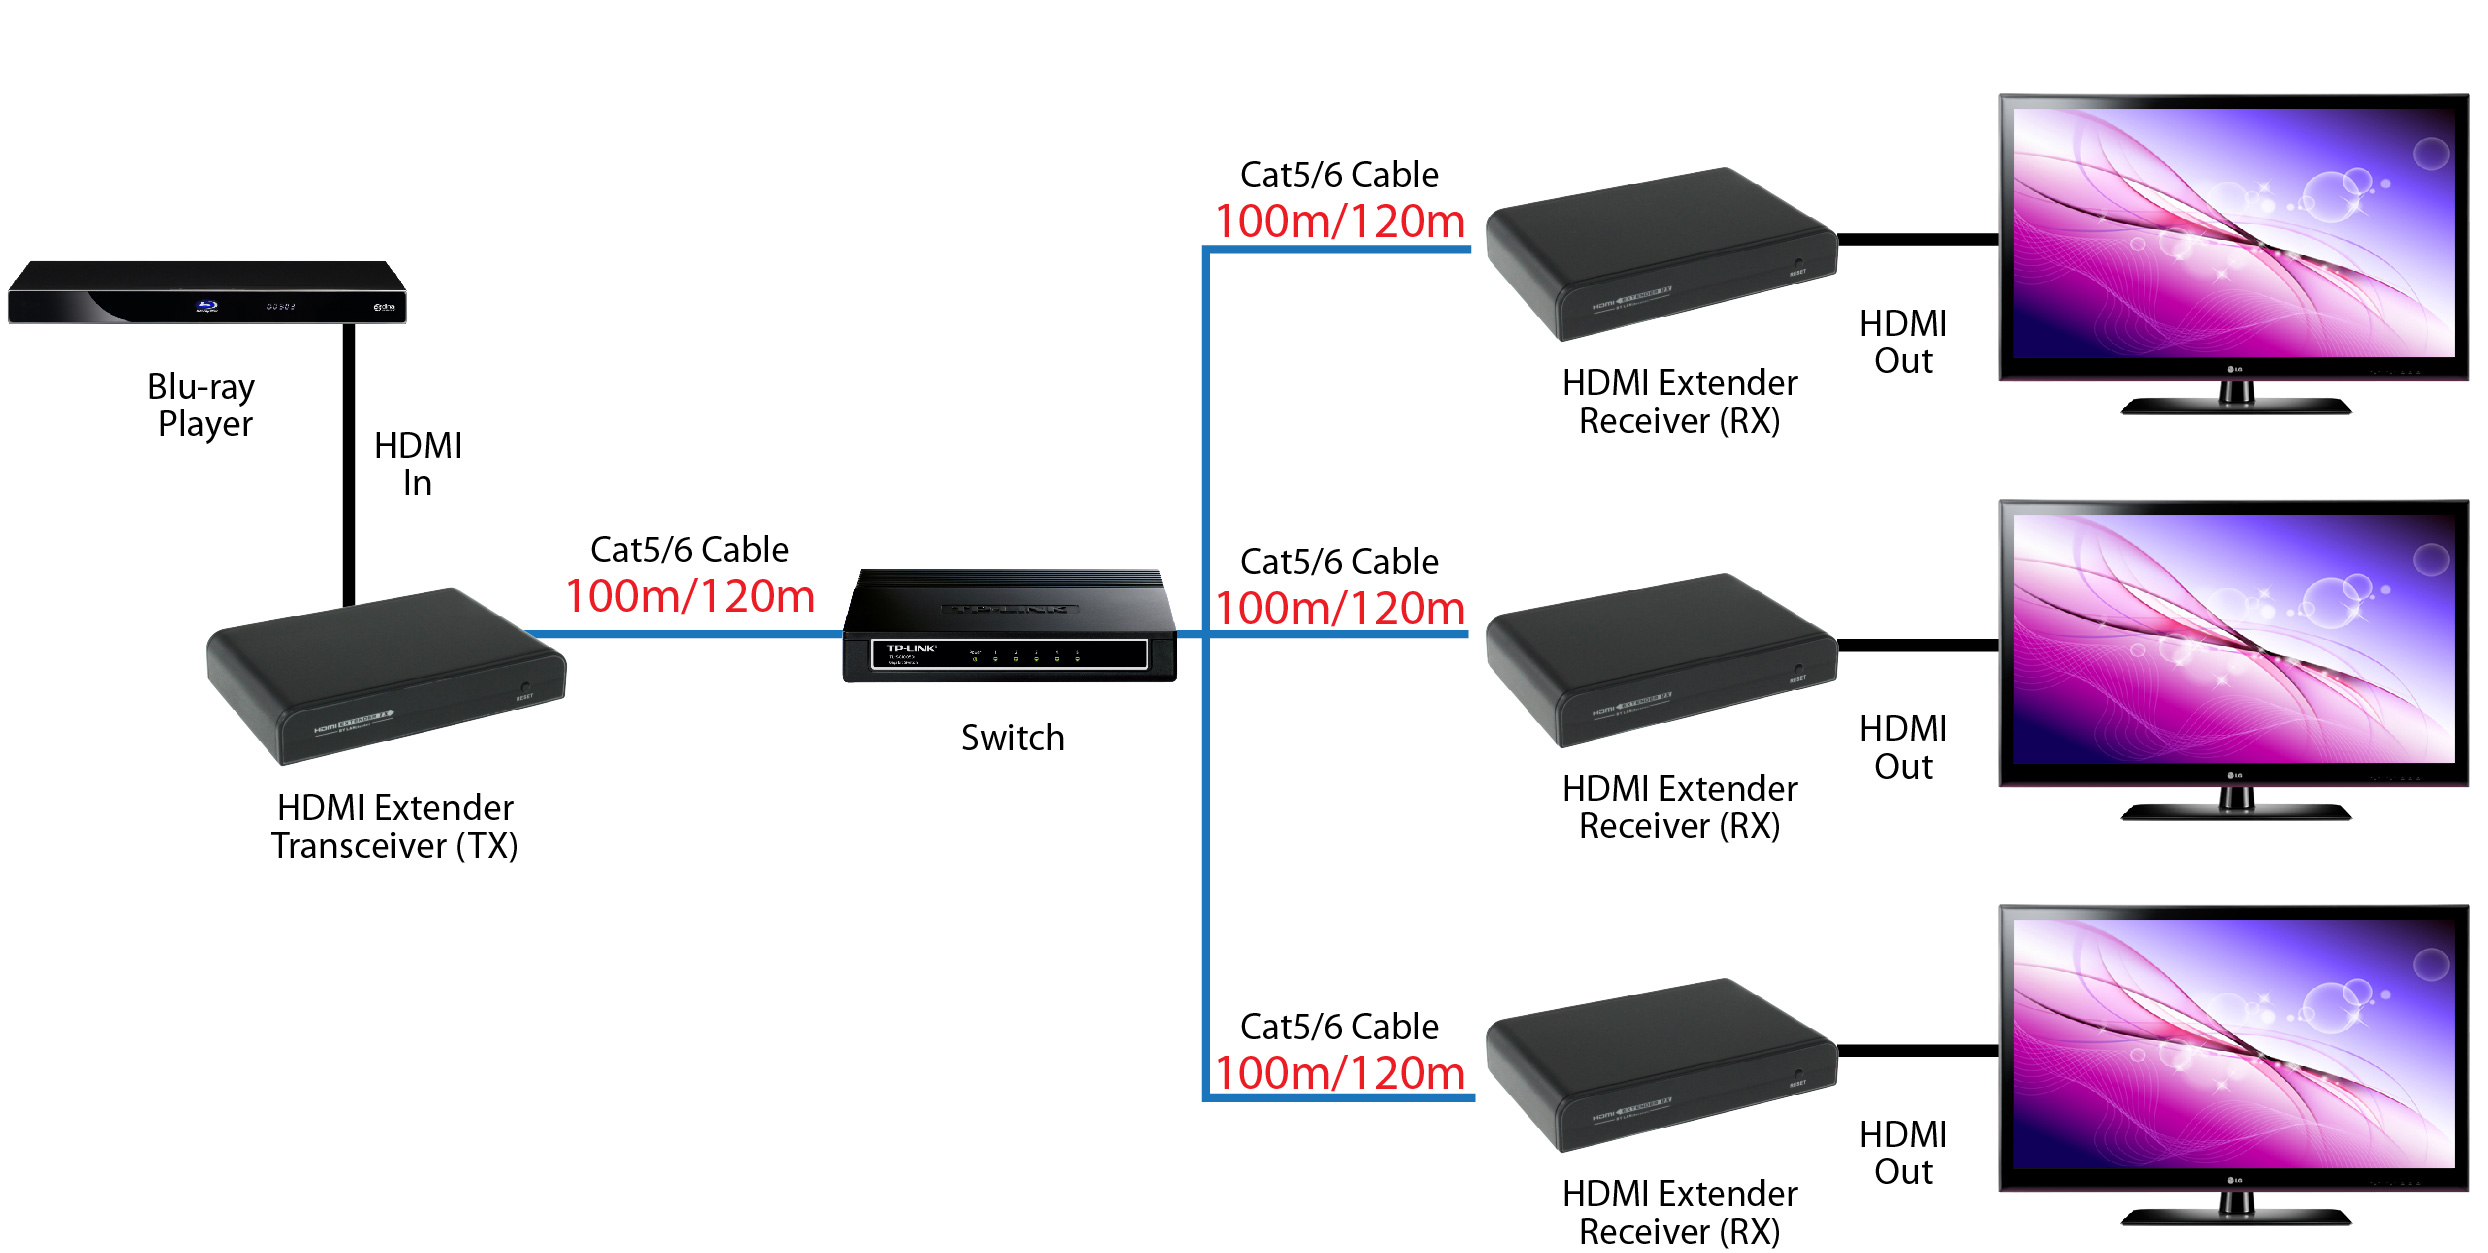 Hdmi extender wiring diagram wiring diagrams schematics hdmi over cat6 wiring diagram wiring diagram apple wiring diagram hdmi connectors and wiring hdmi extender over ethernet cable with built in ir up to 394ft asfbconference2016 Gallery